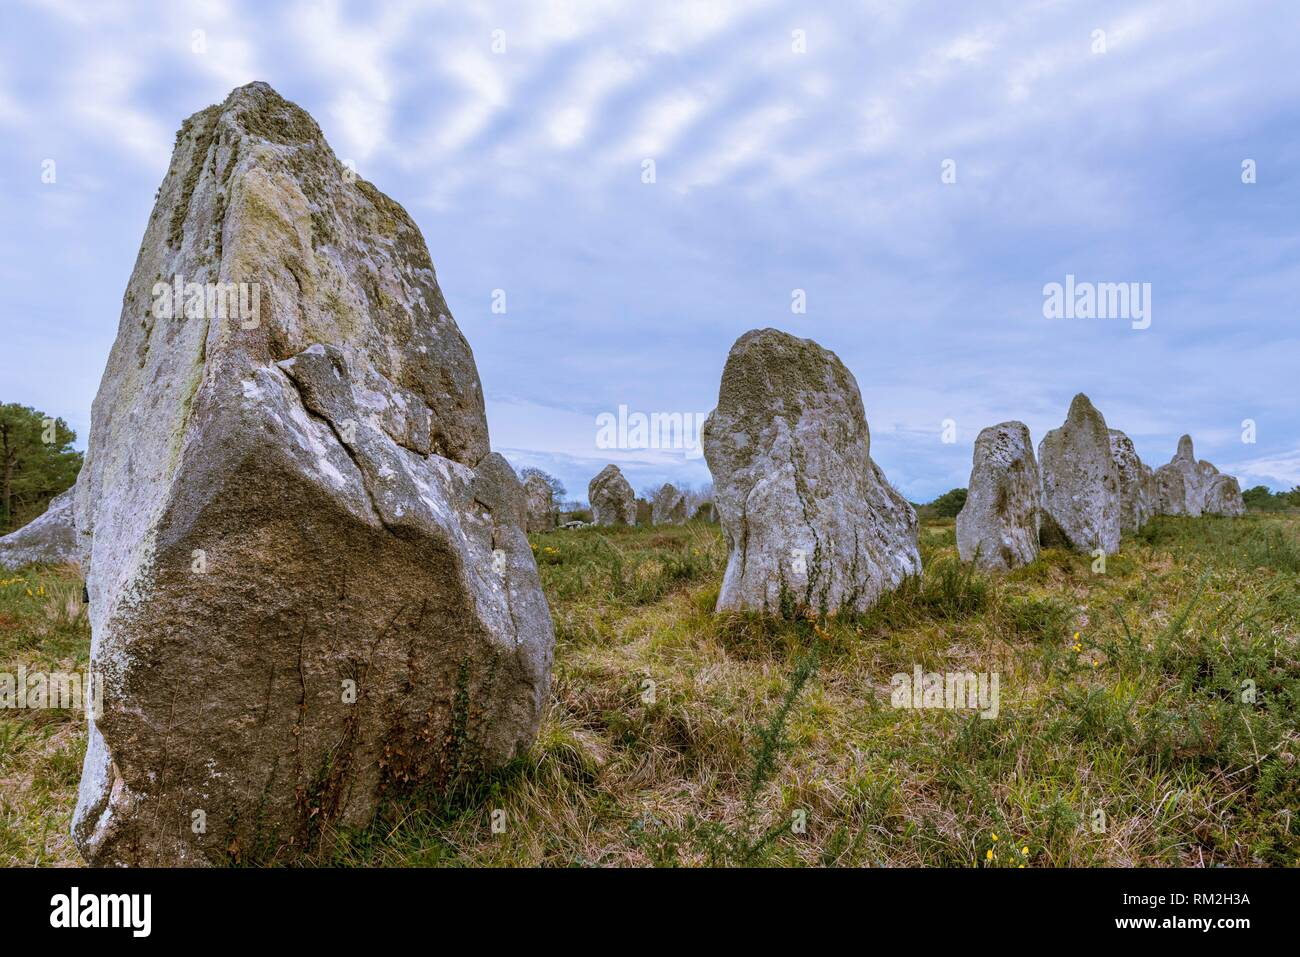 Kermario Alignment, Megalithic site of Carnac, Morbihan, French Brittany, France, Europe. - Stock Image